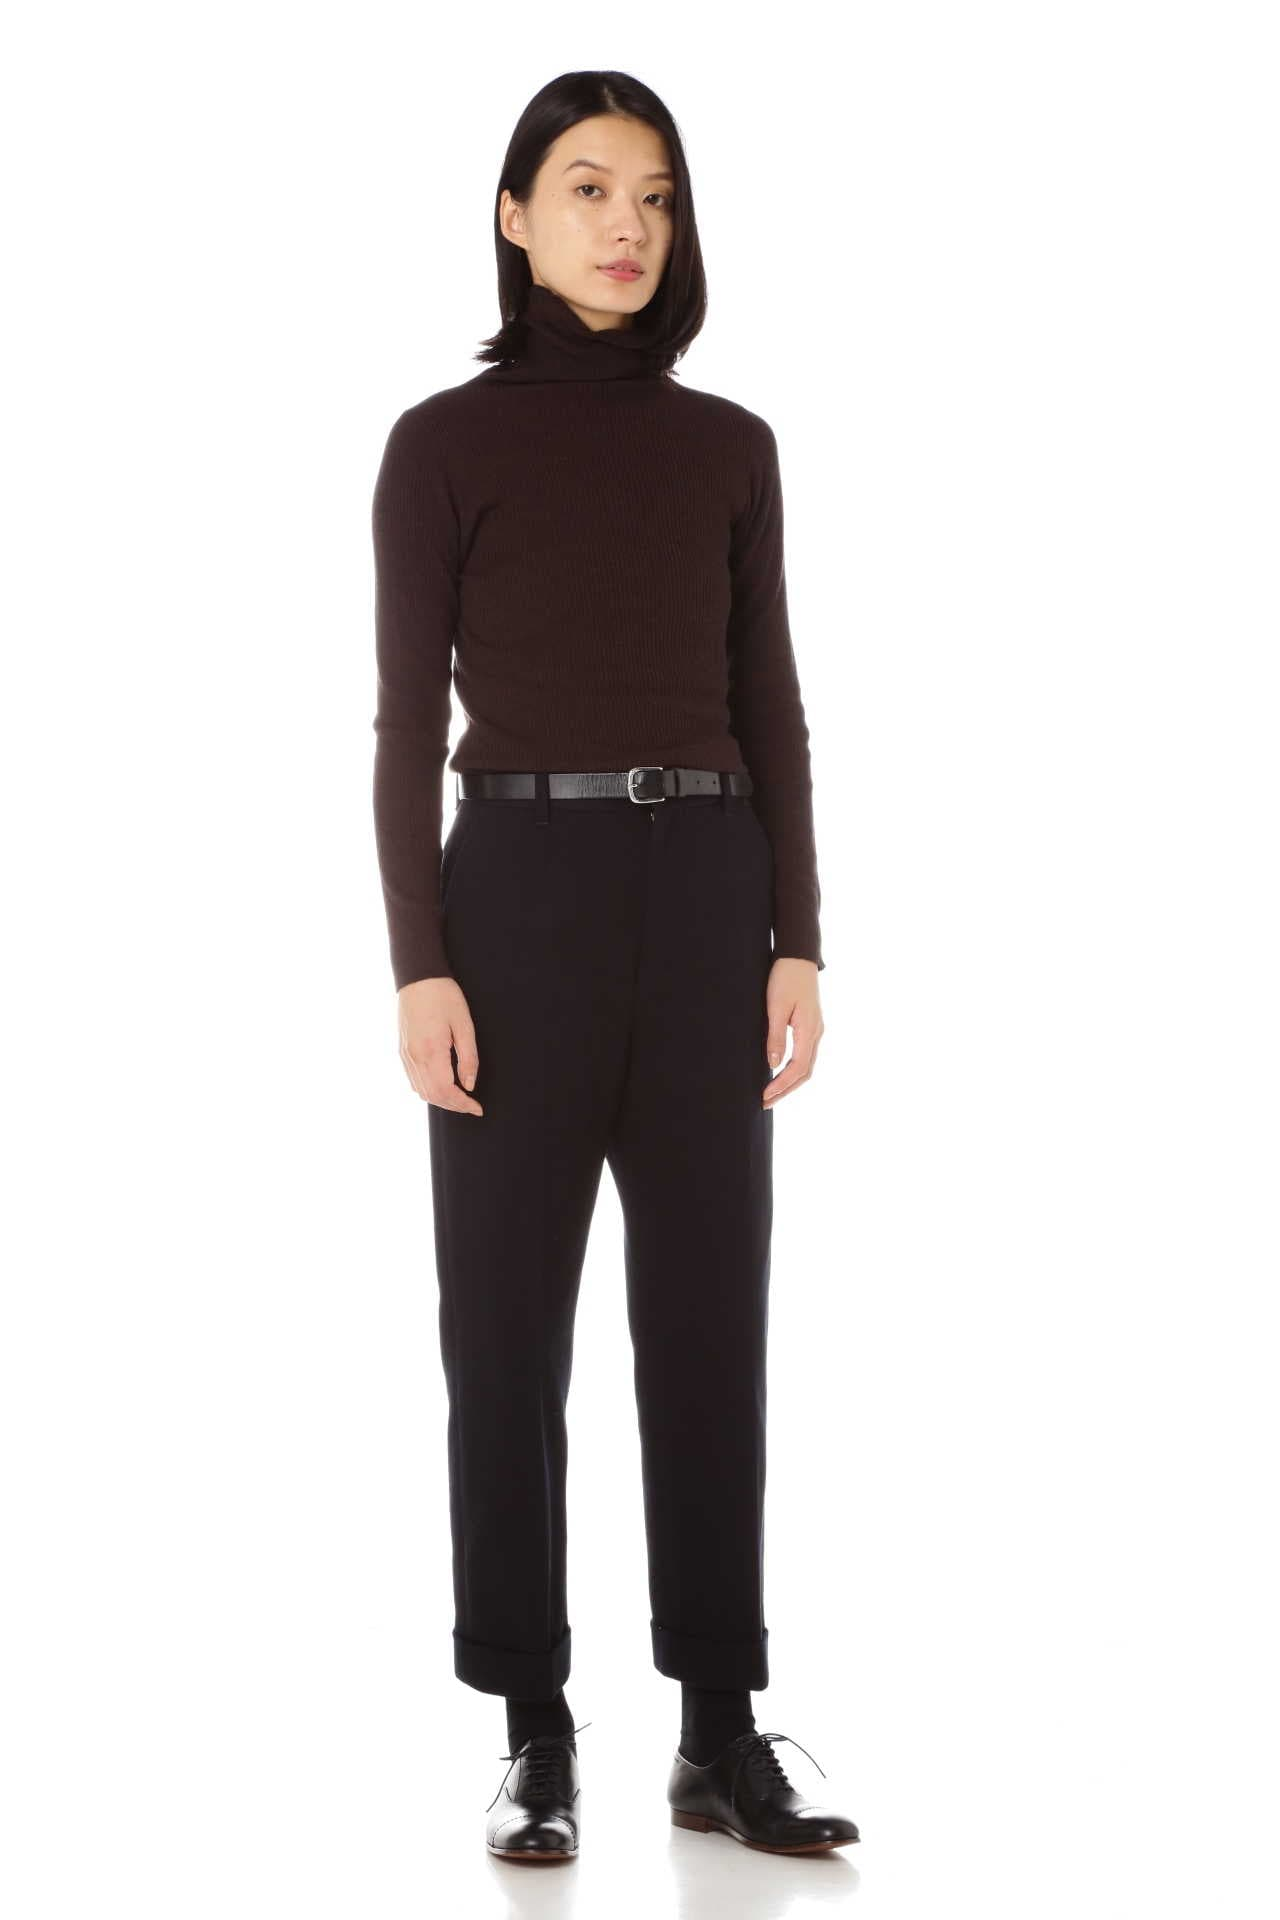 FINE RIB TURTLENECK12